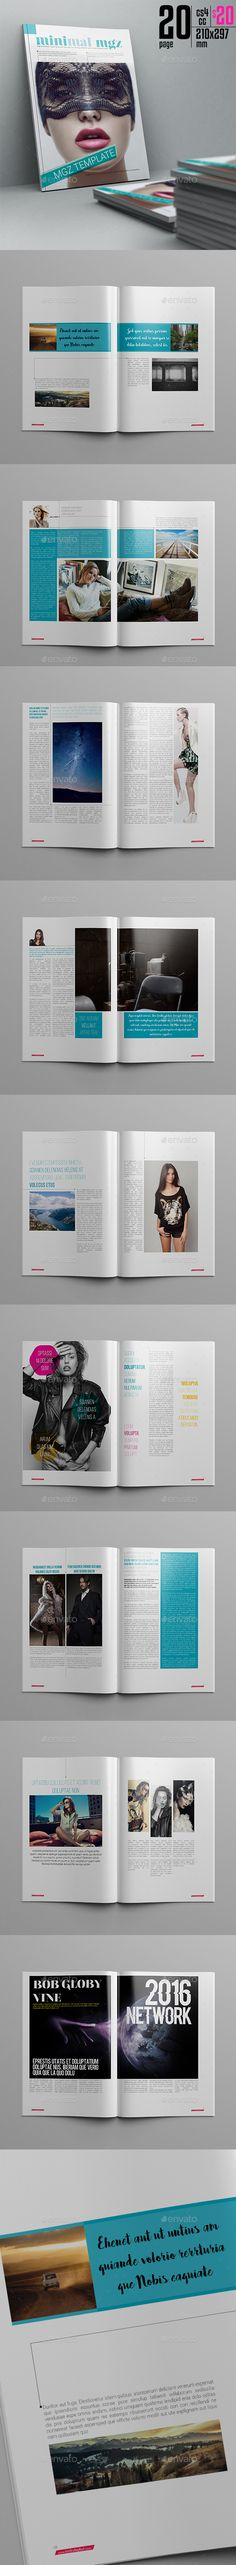 Minimal Magazine 20 Pages Template InDesign INDD #design Download: http://graphicriver.net/item/minimal-magazine-template-20-page/14276077?ref=ksioks